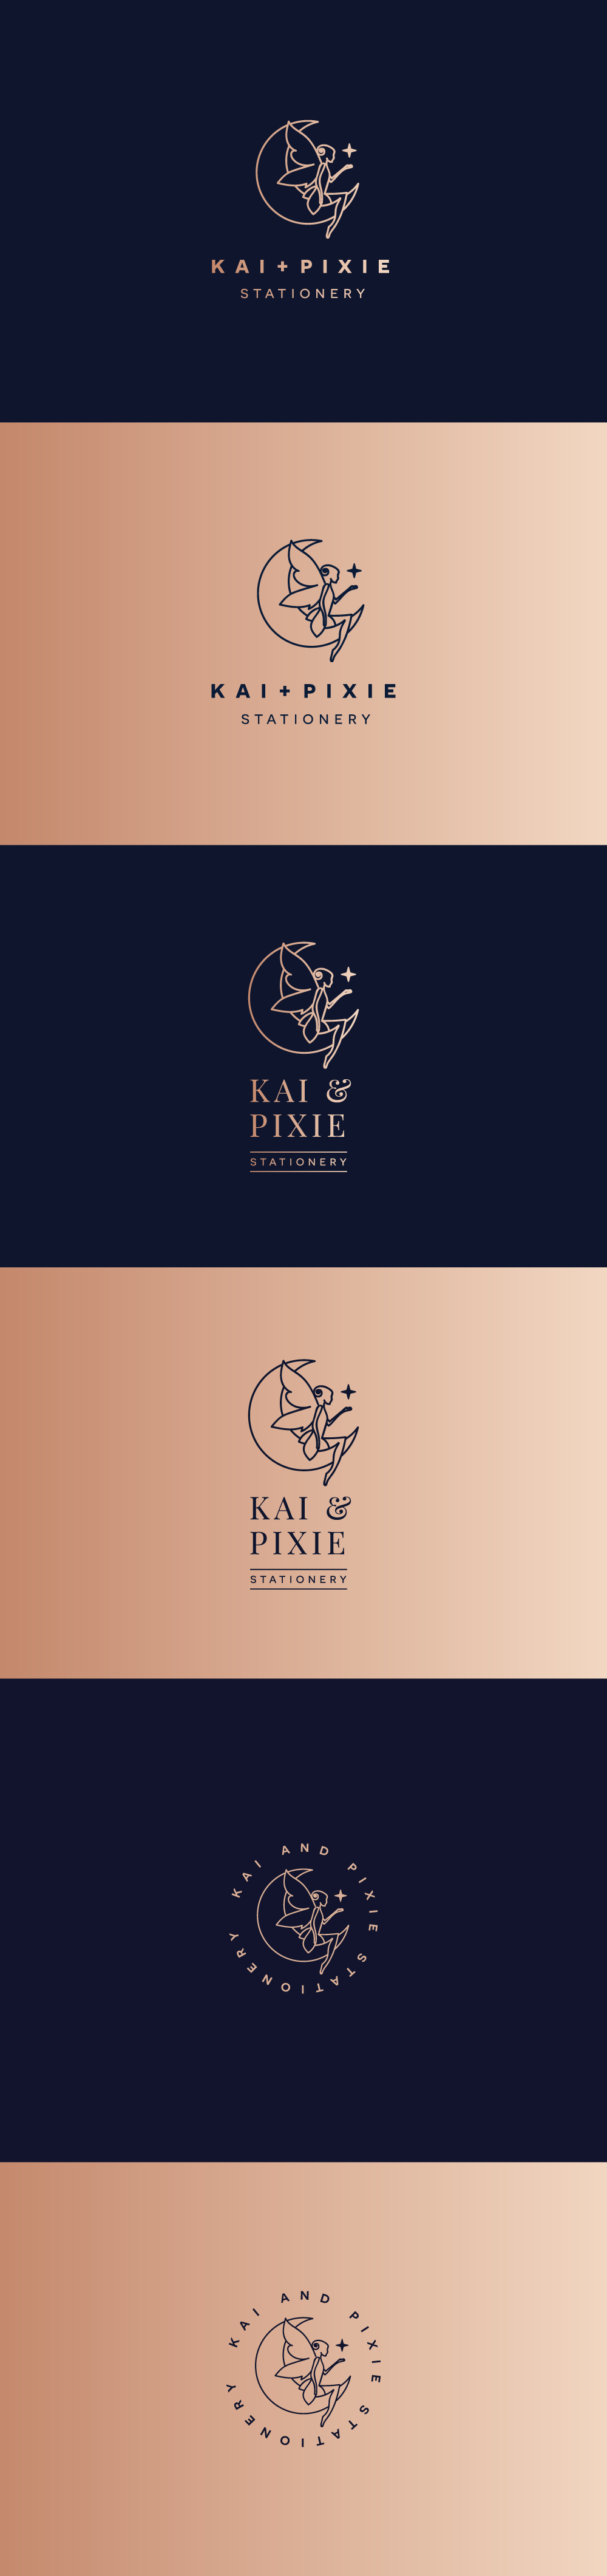 kai+pixie stationery: luxury,glam stationery ,gifts ,paper products & stylish party items